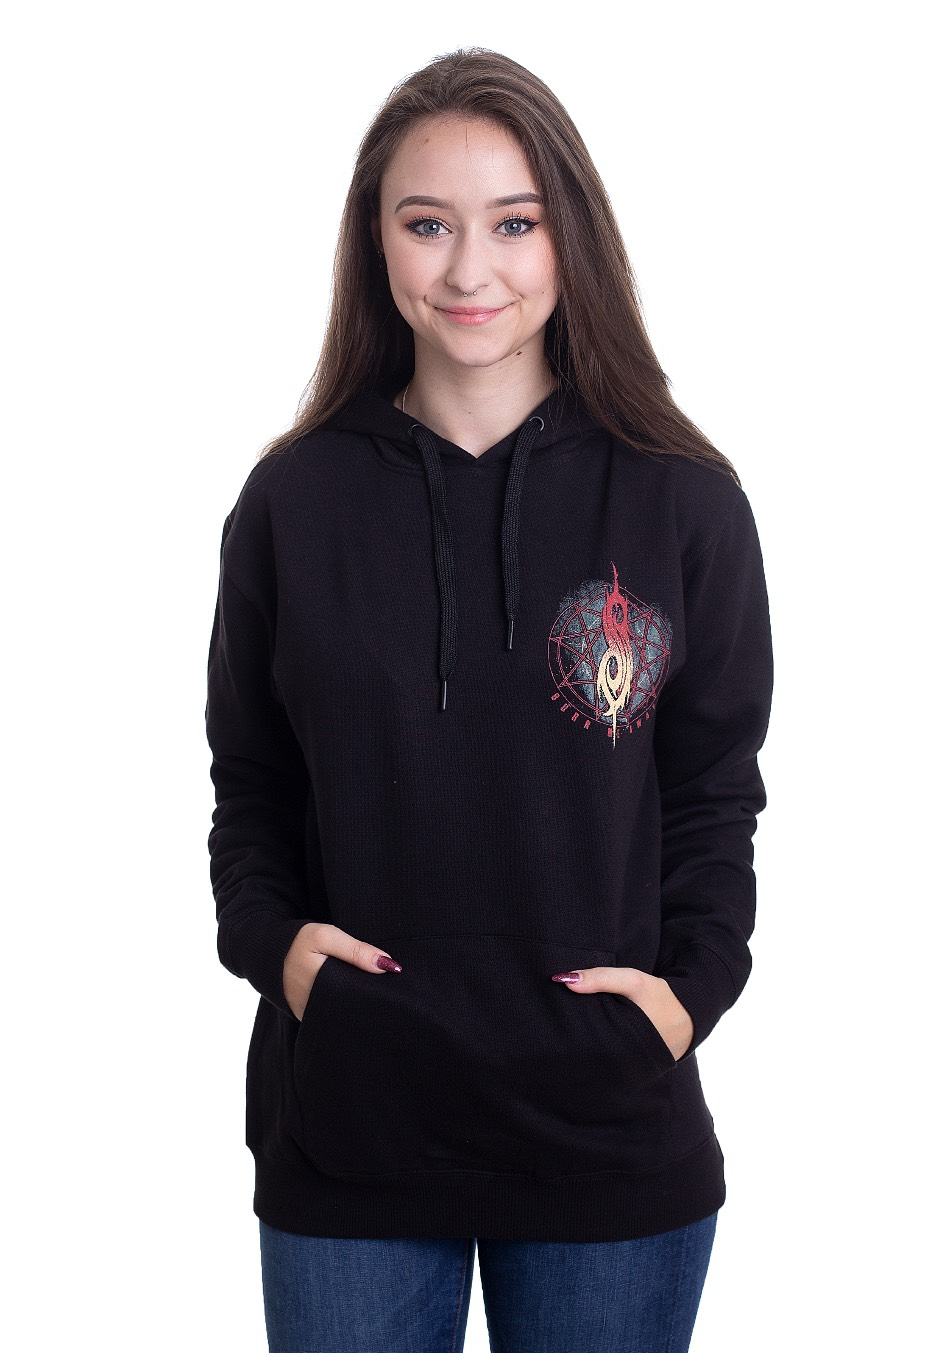 Slipknot - Official Merchandise - Impericon com AU